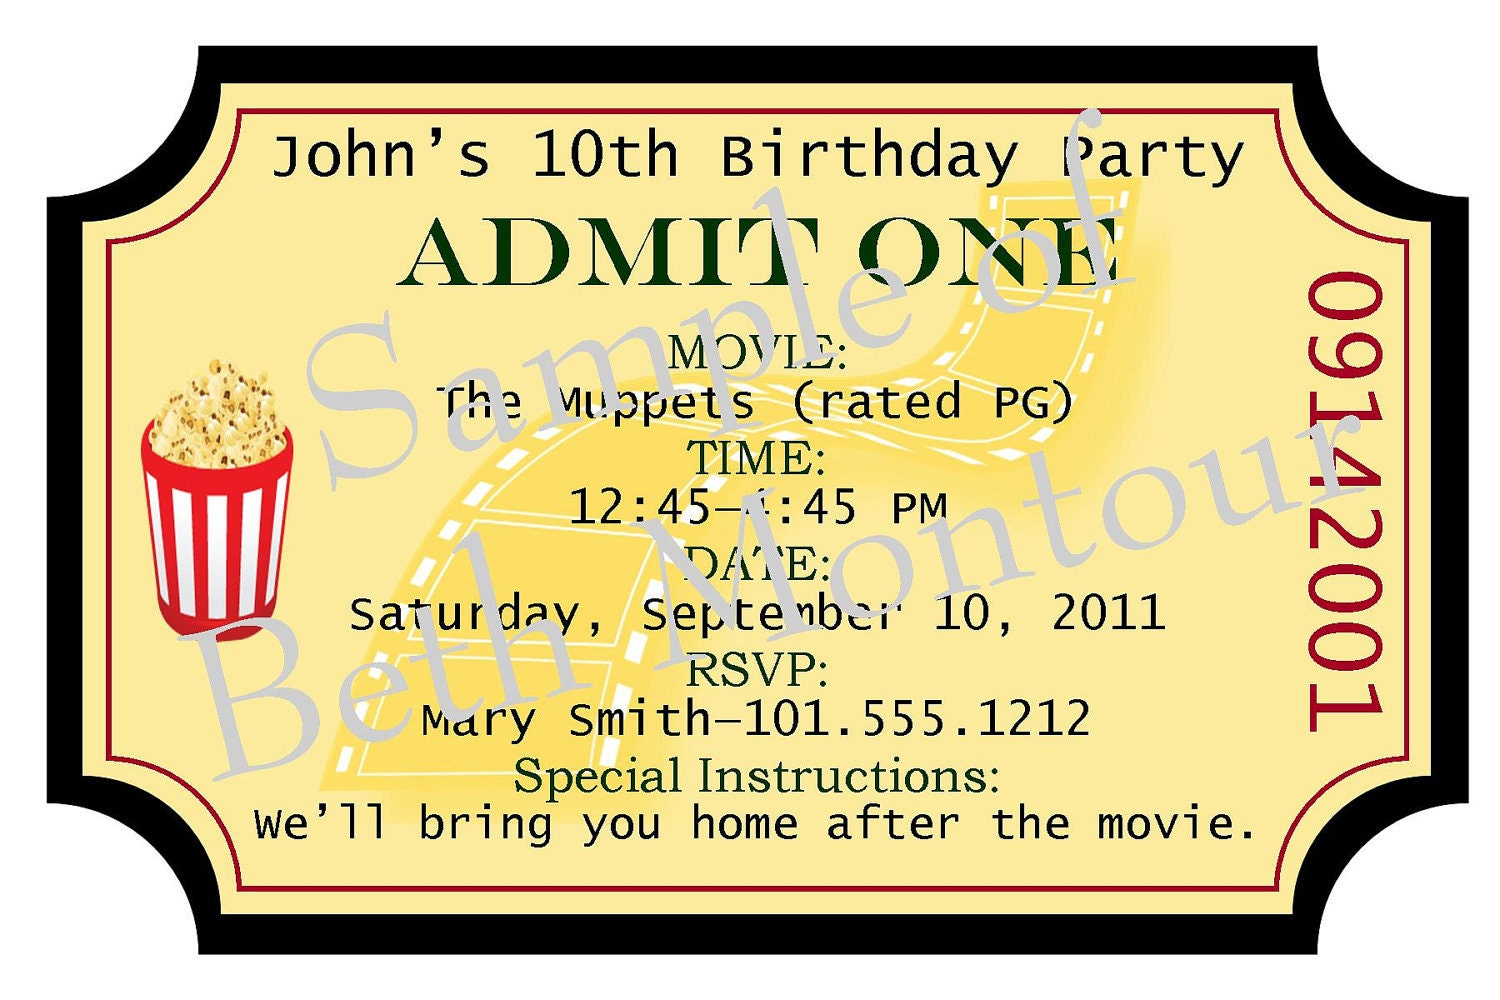 Movie Ticket Movie ticket invitation